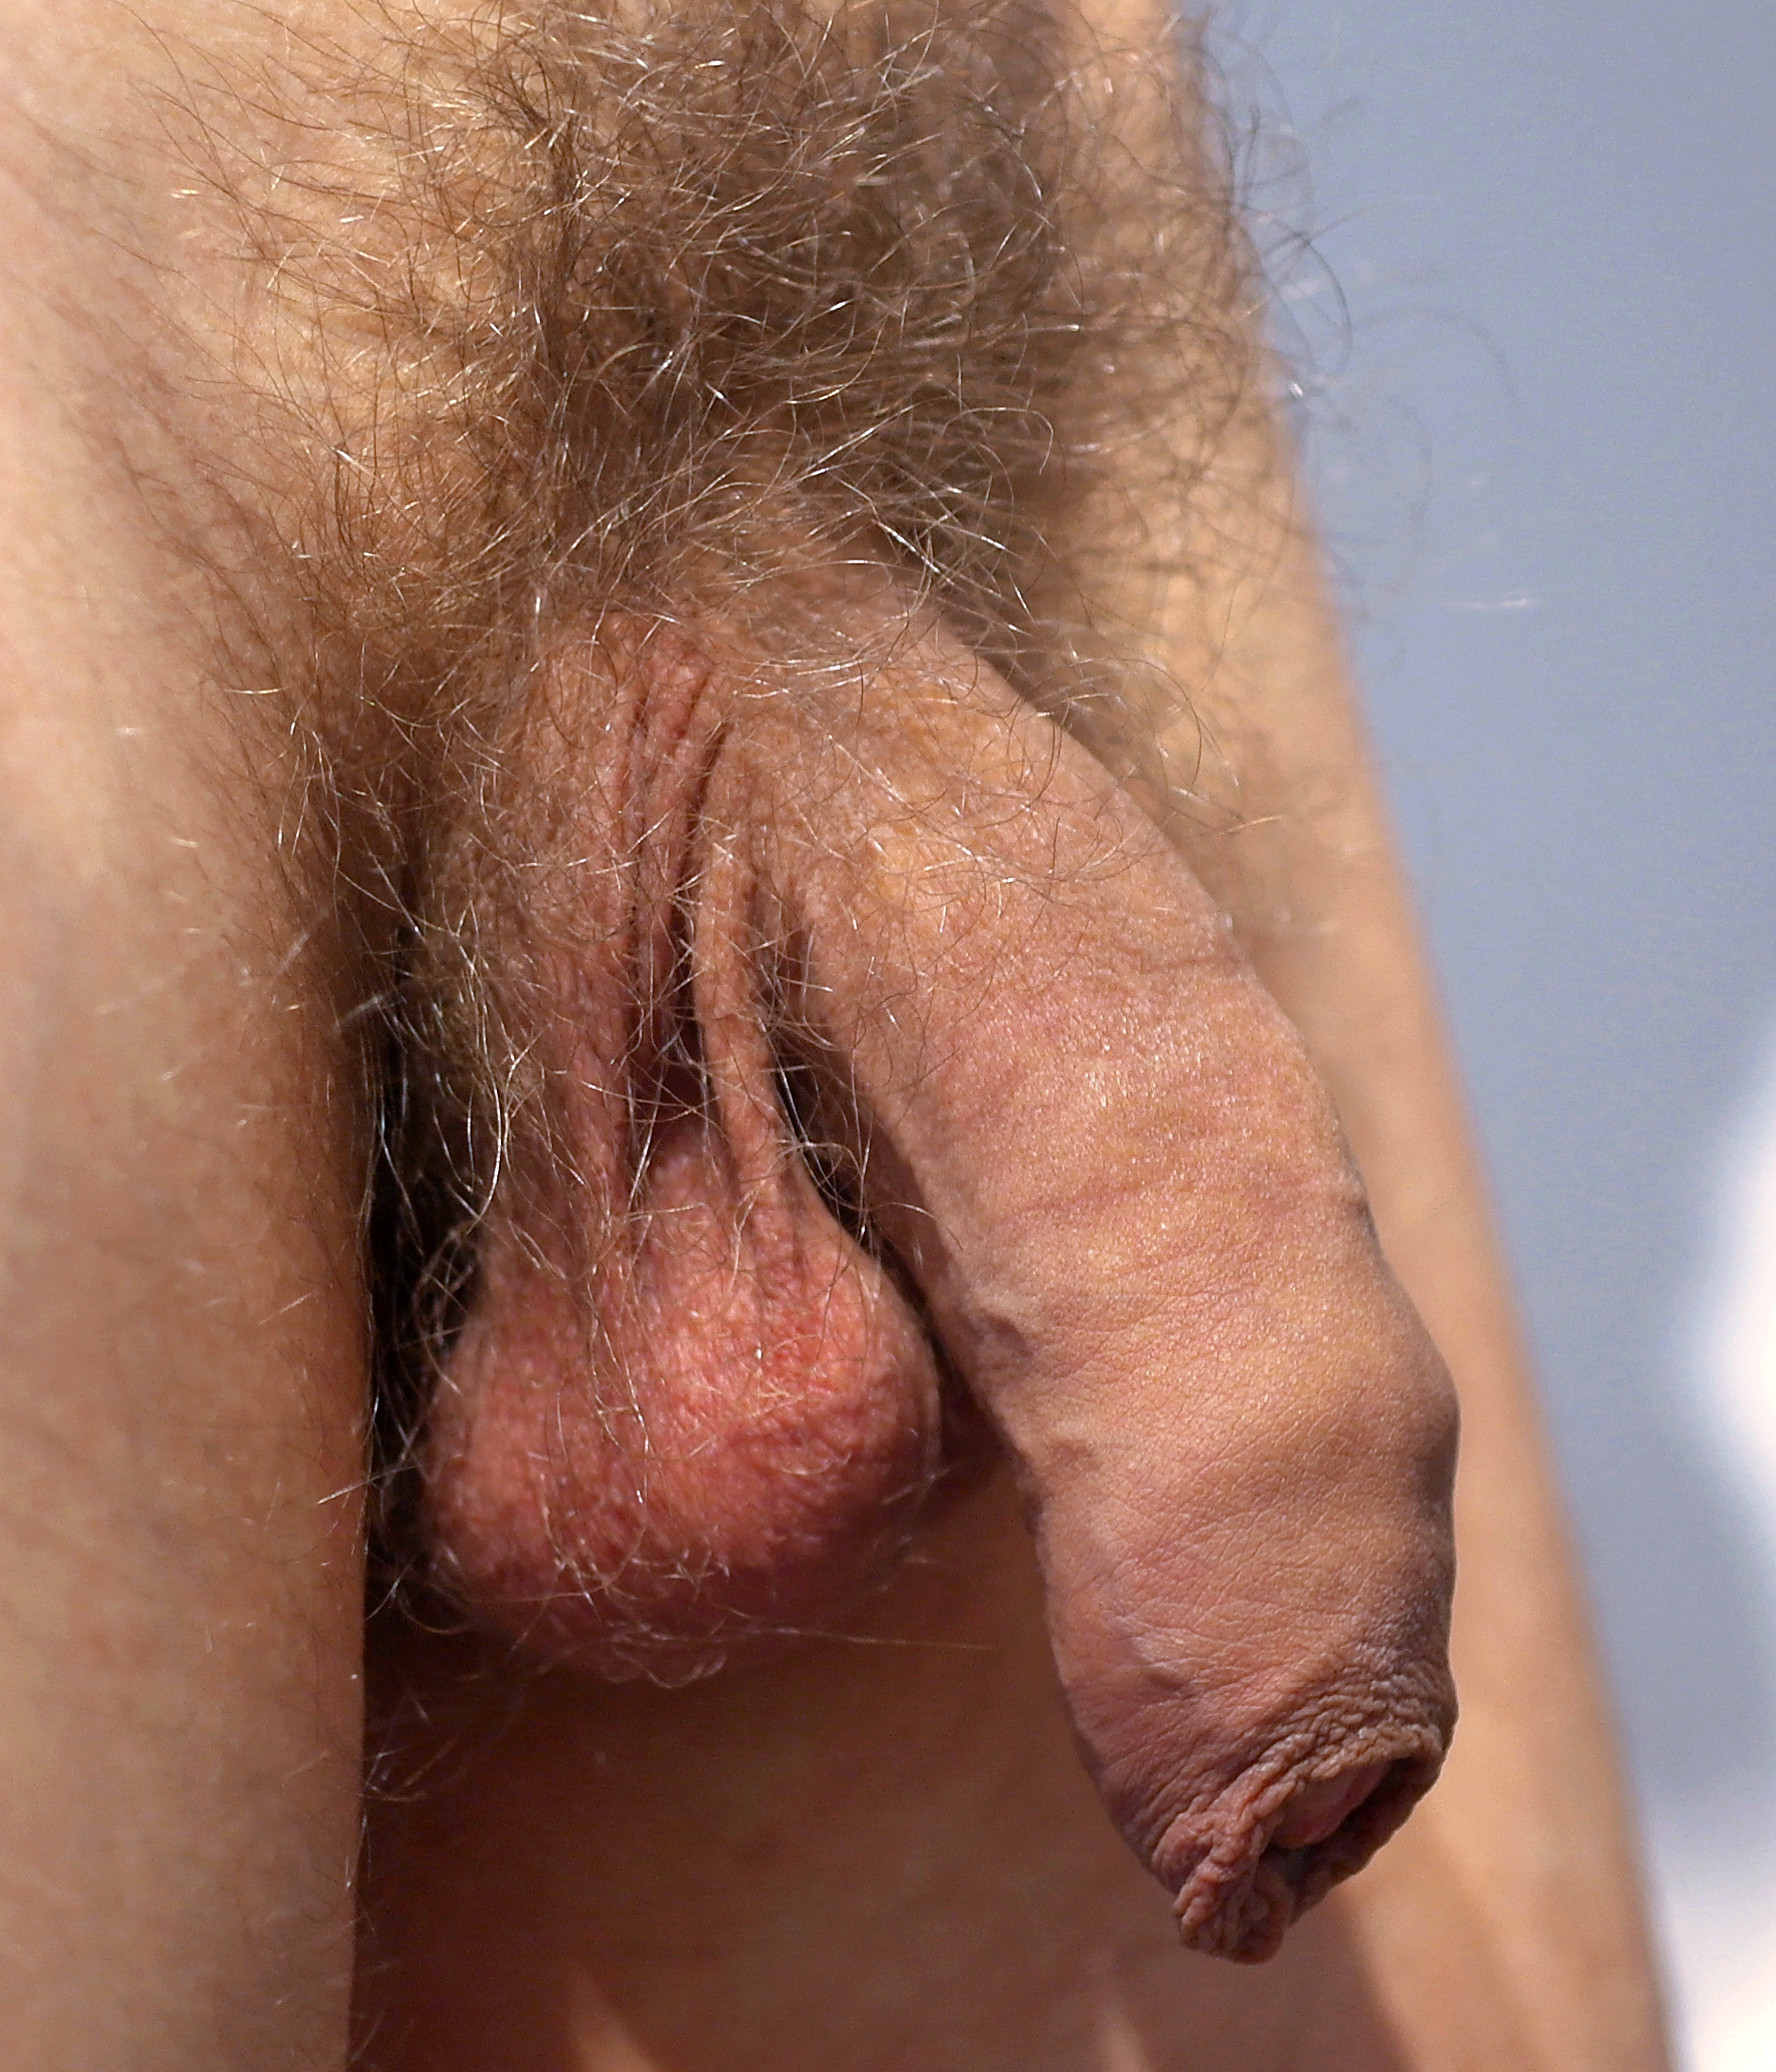 import-tuner-hairy-penis-or-shaved-penis-naked-little-ganster